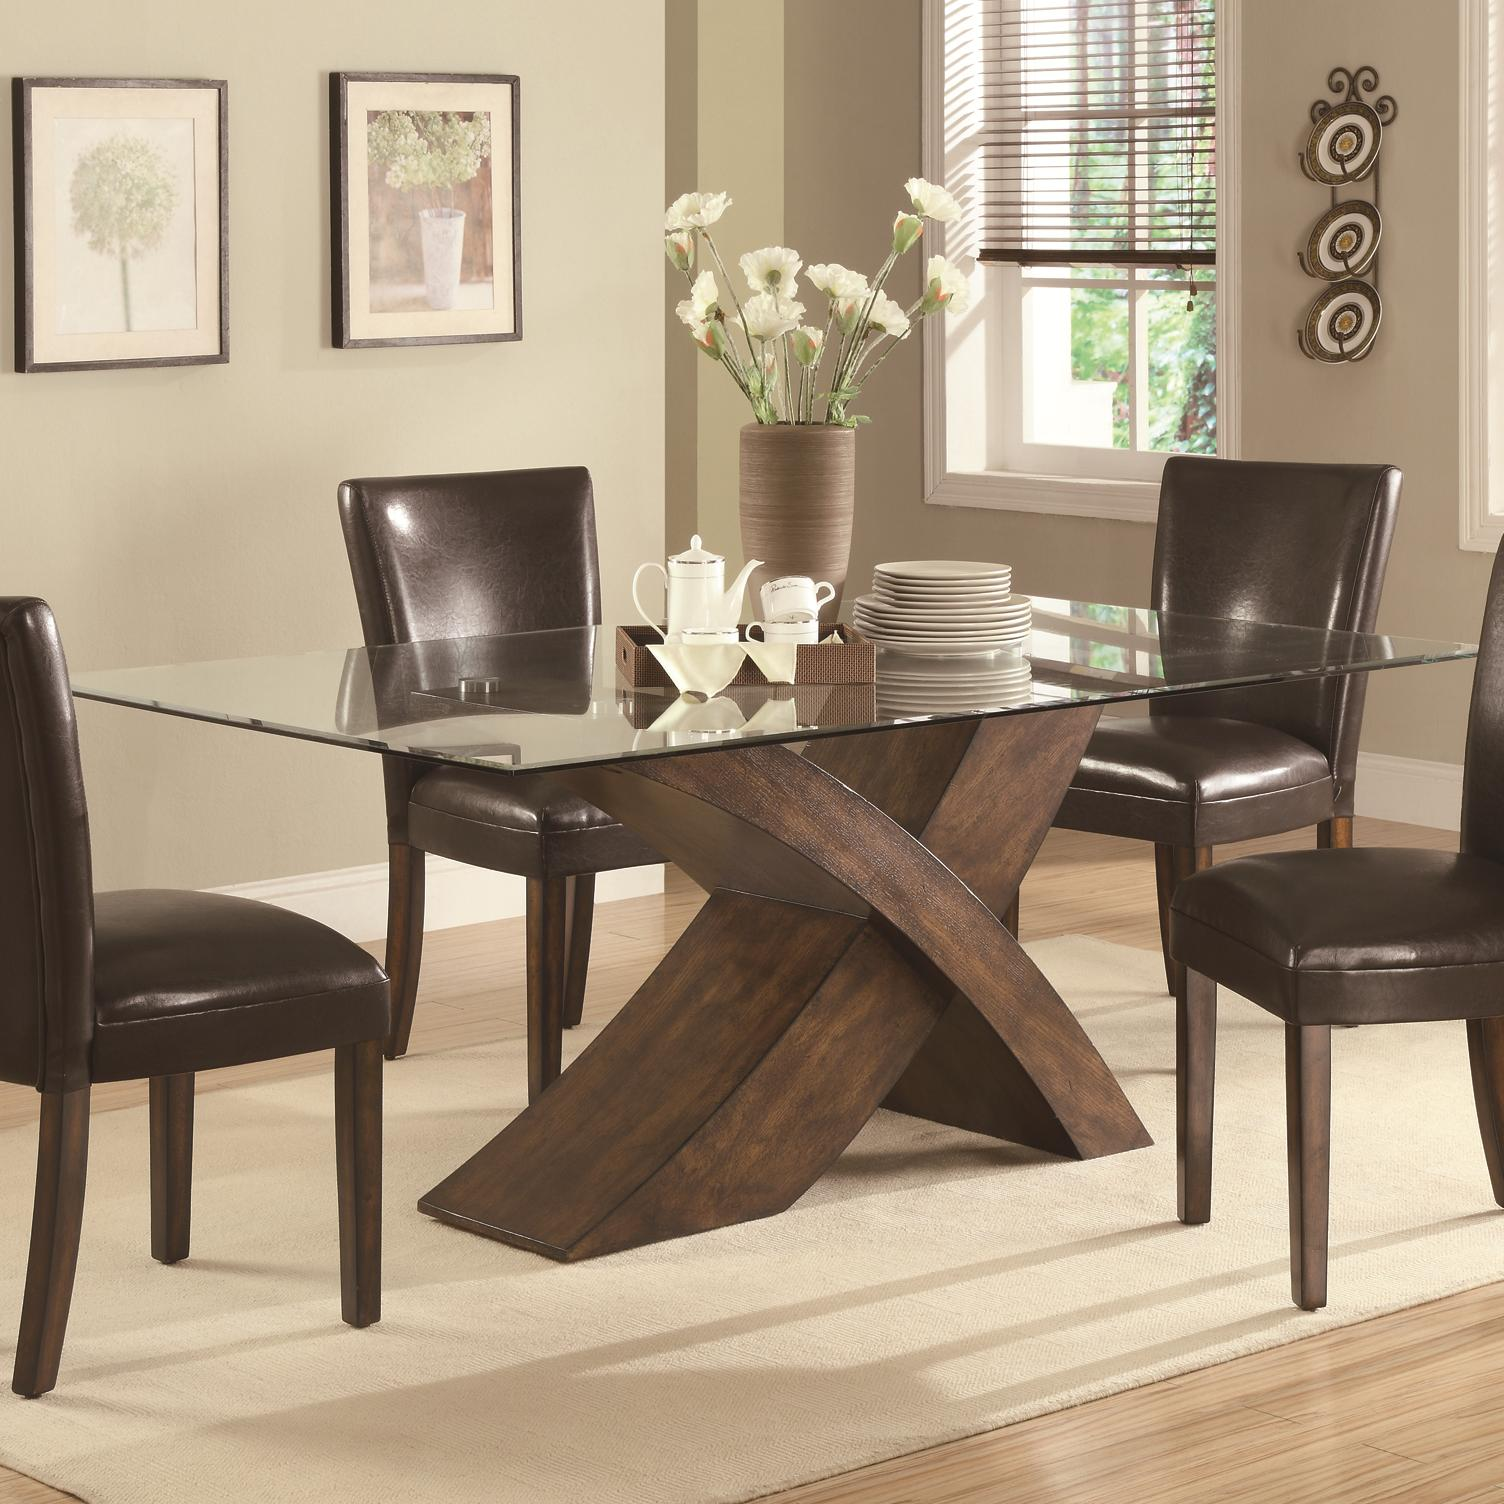 Coaster Nessa Dining Table - Item Number: 103051